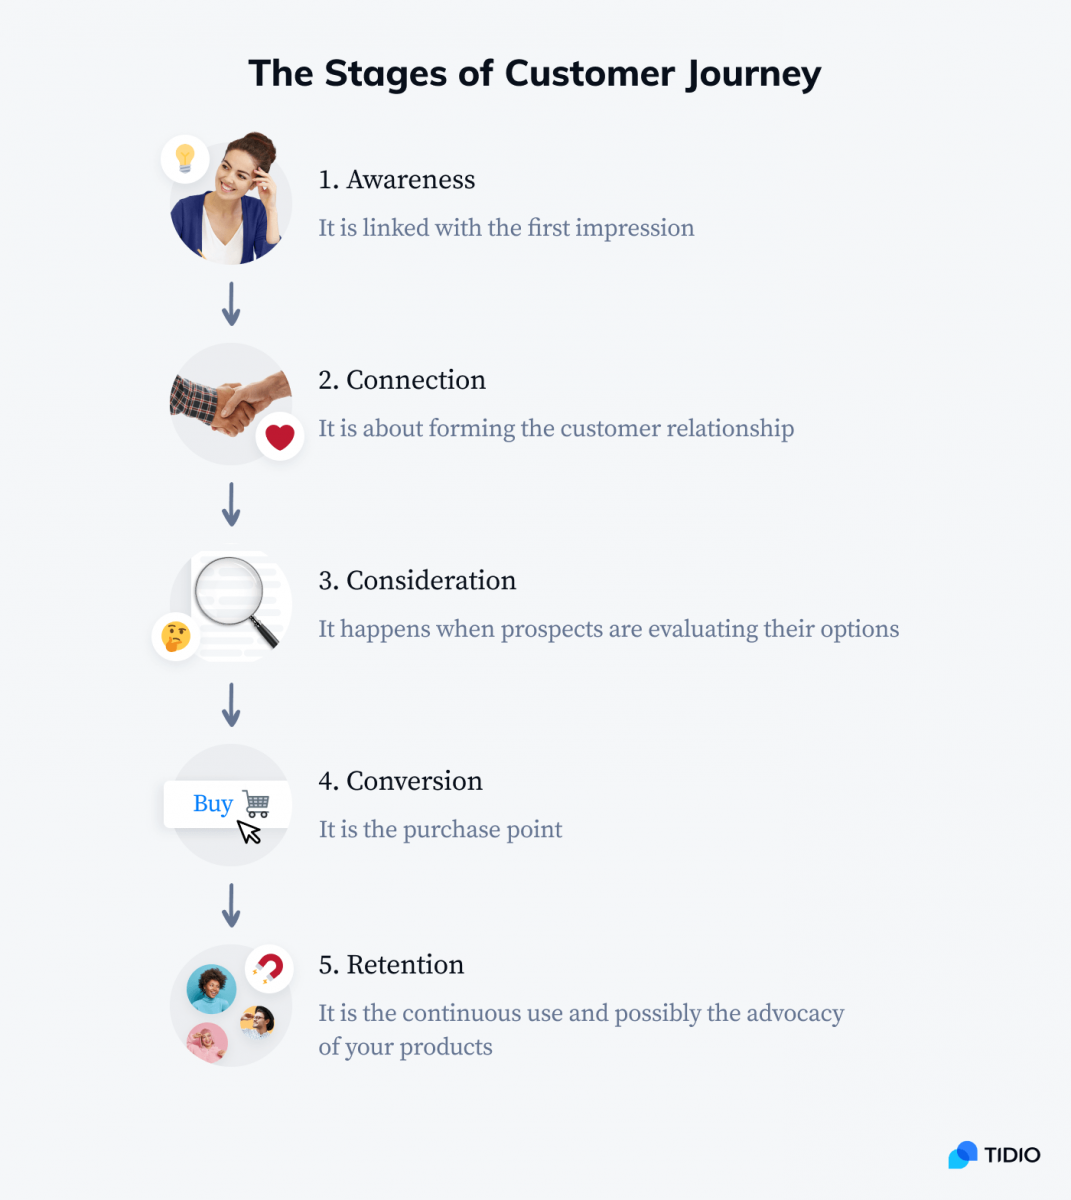 The stages of customer journey infographic